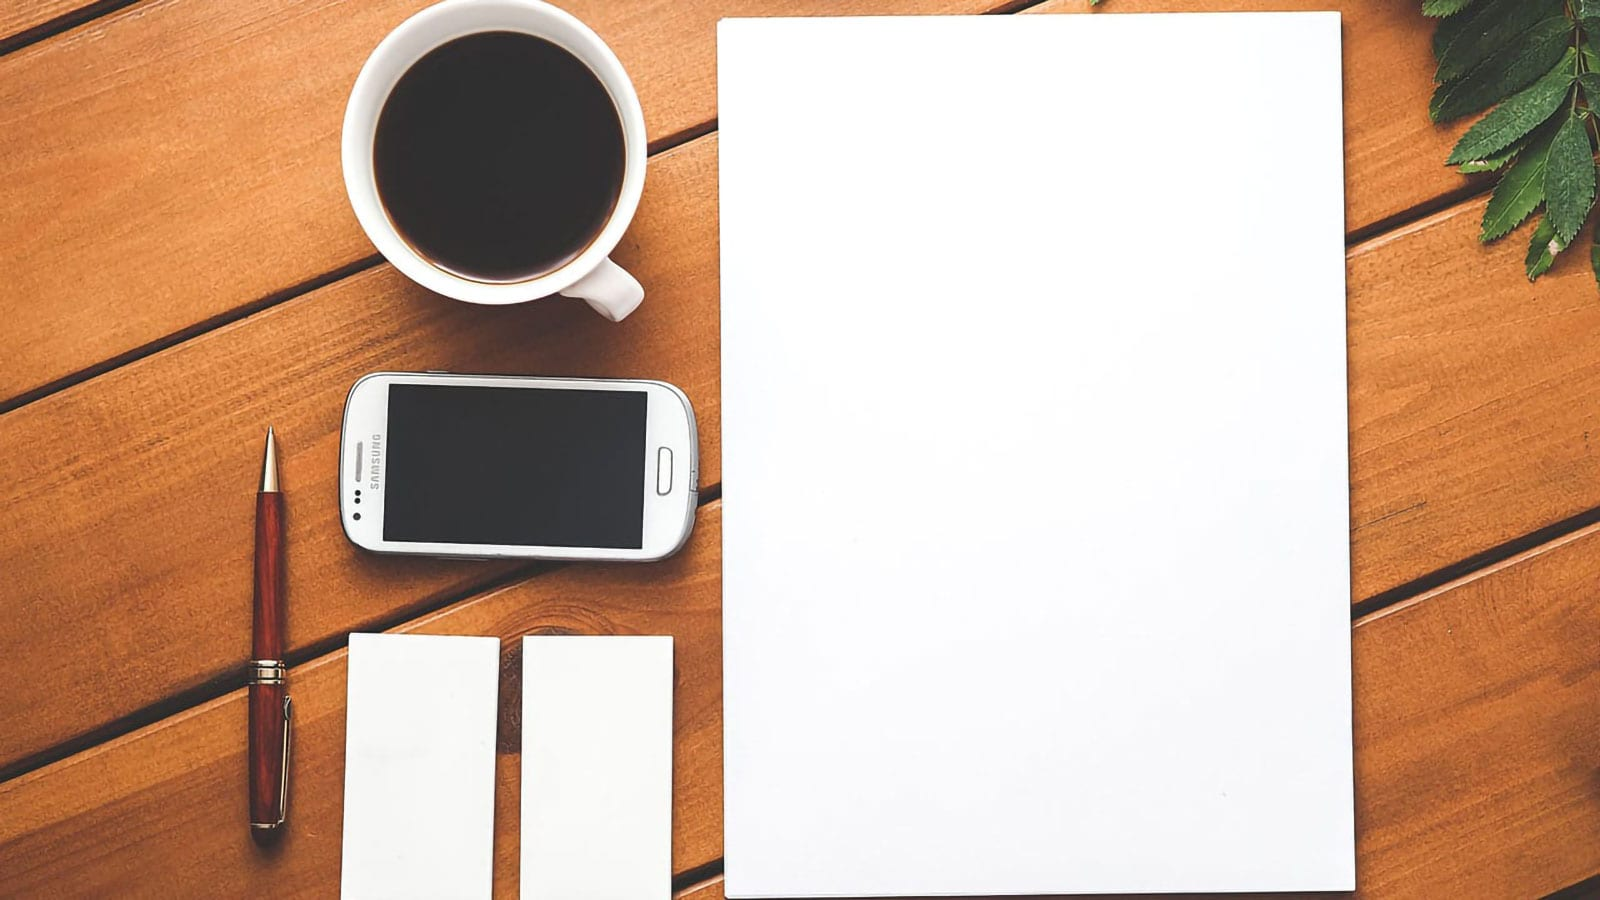 4 Steps To Find Your Brand Voice